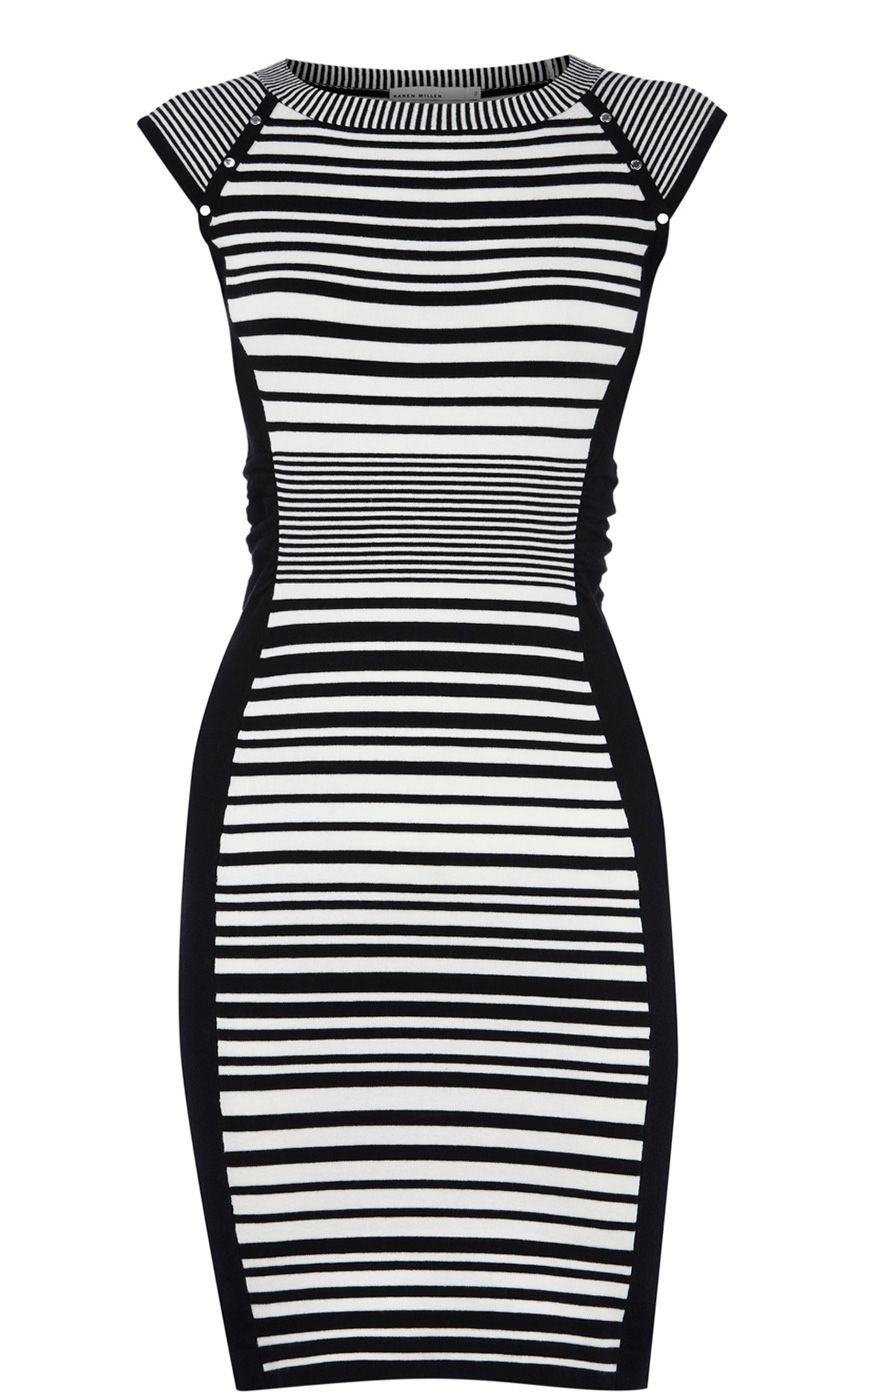 Women's Striped Knit Collection Dress, Black - style: jumper dress; neckline: round neck; sleeve style: capped; fit: tight; pattern: horizontal stripes; waist detail: fitted waist; hip detail: fitted at hip; predominant colour: black; occasions: casual, evening, work; length: just above the knee; fibres: polyester/polyamide - stretch; sleeve length: short sleeve; pattern type: fabric; pattern size: standard